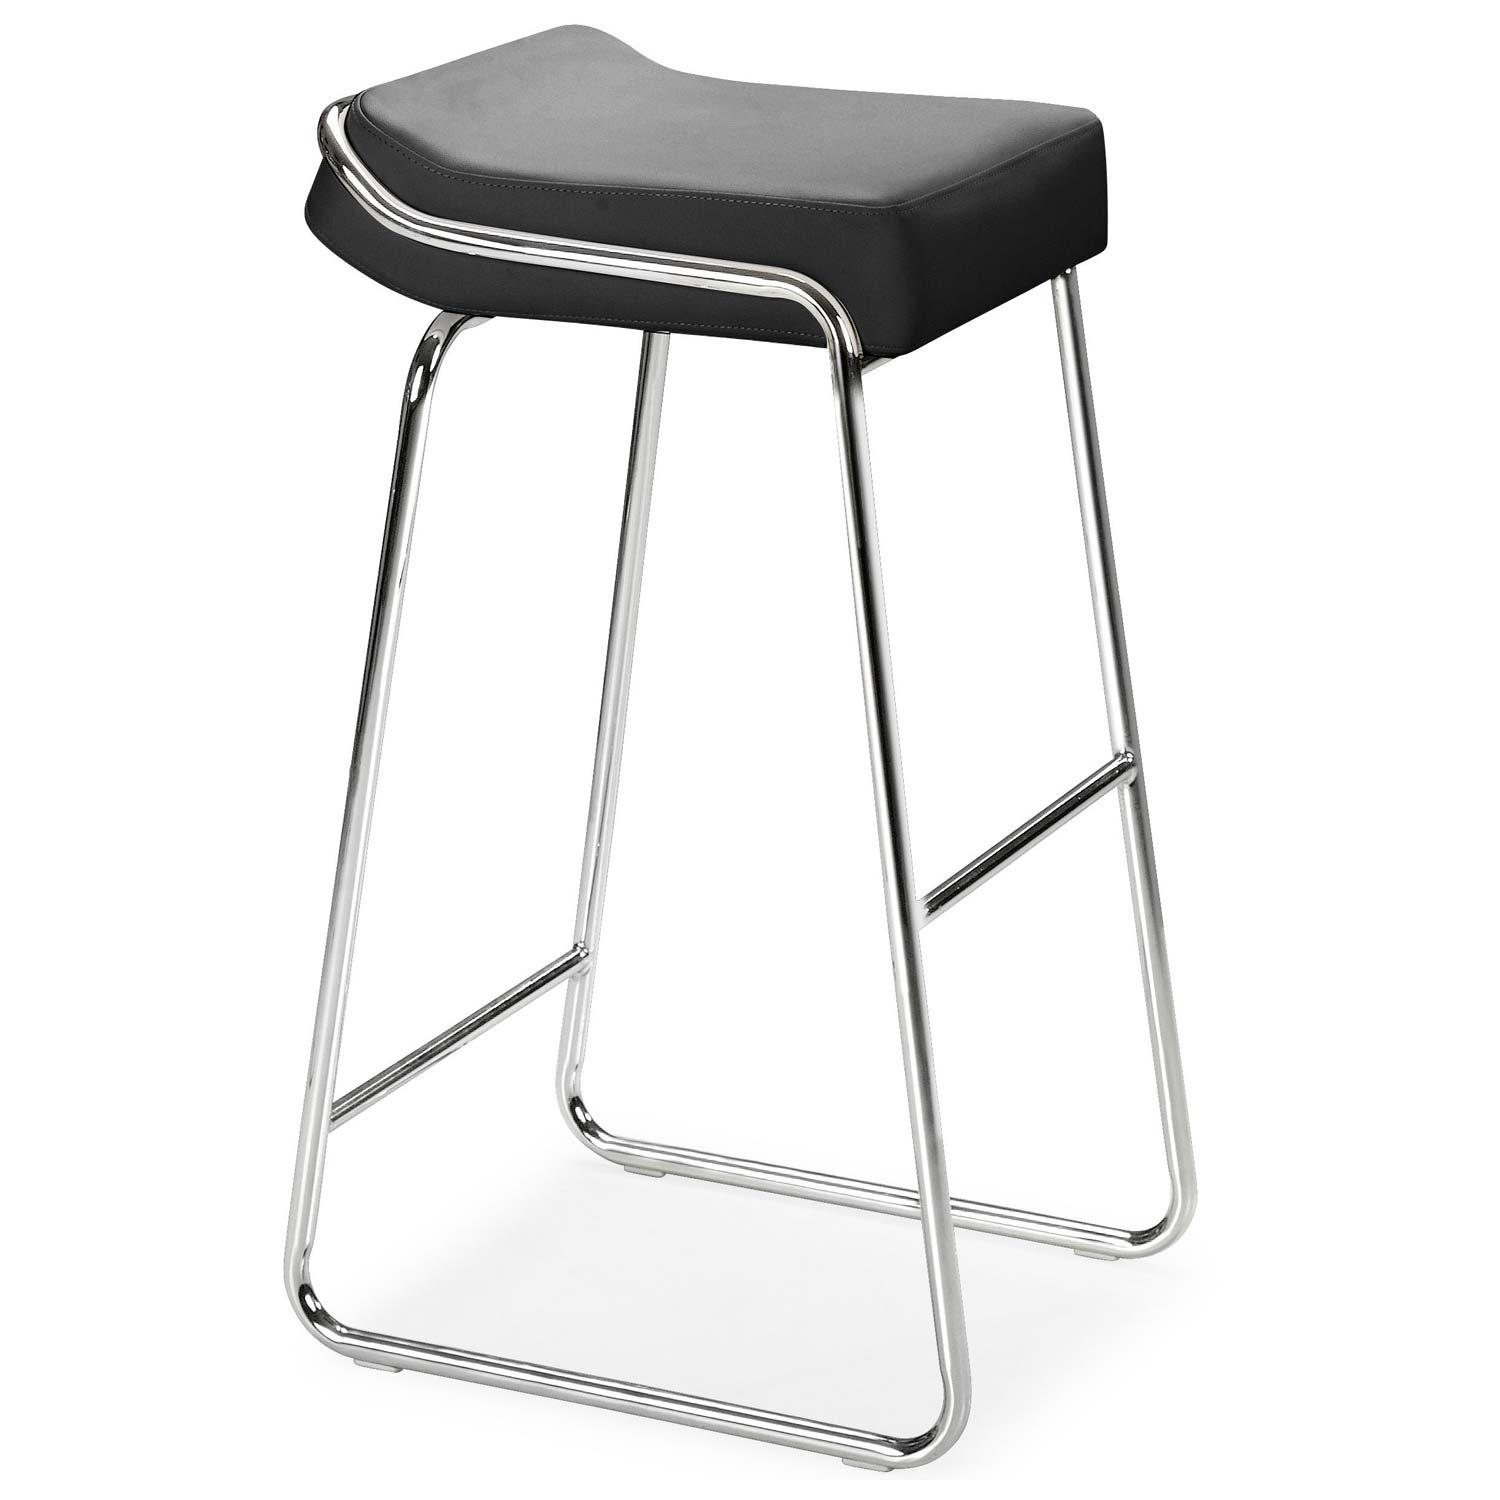 Piano 32 backless bar stool chrome leatherette zm 30004x pianstl